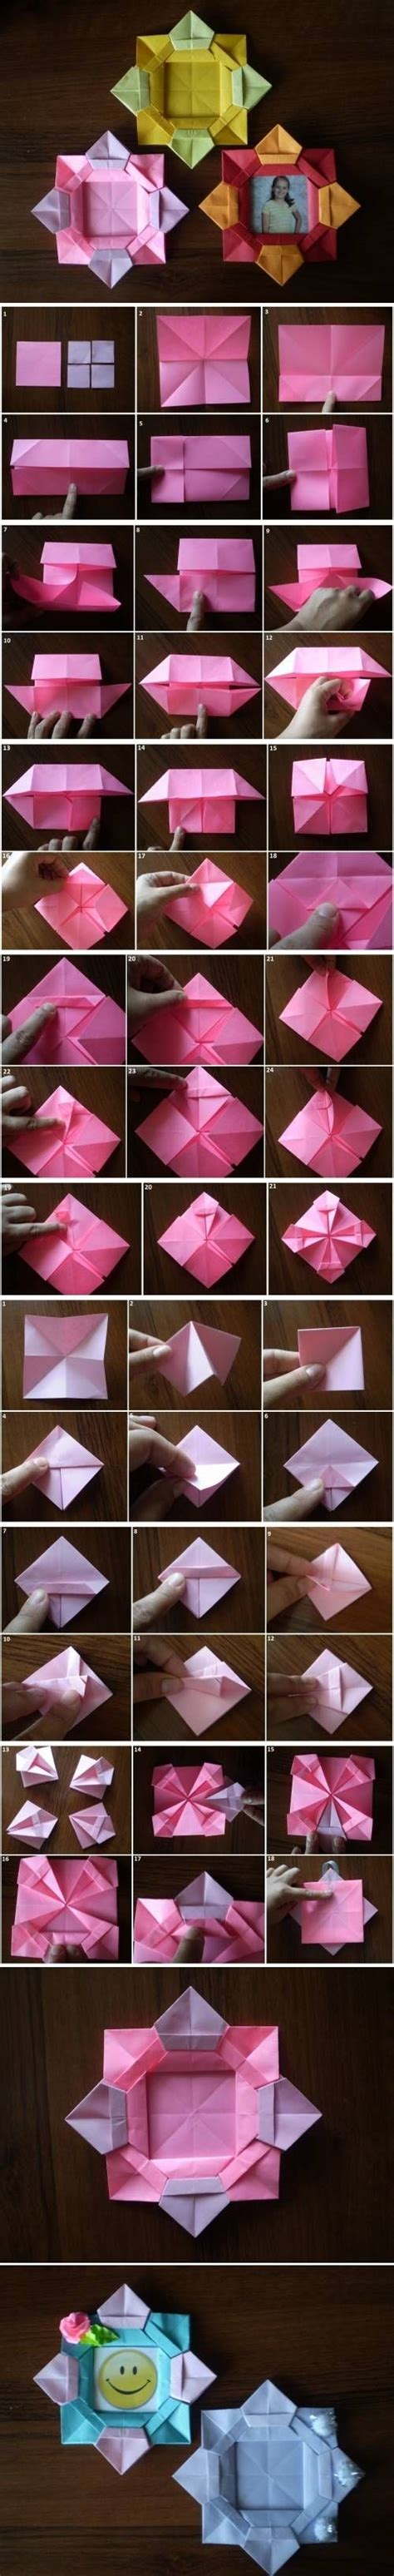 diy origami flower picture frame pictures photos and